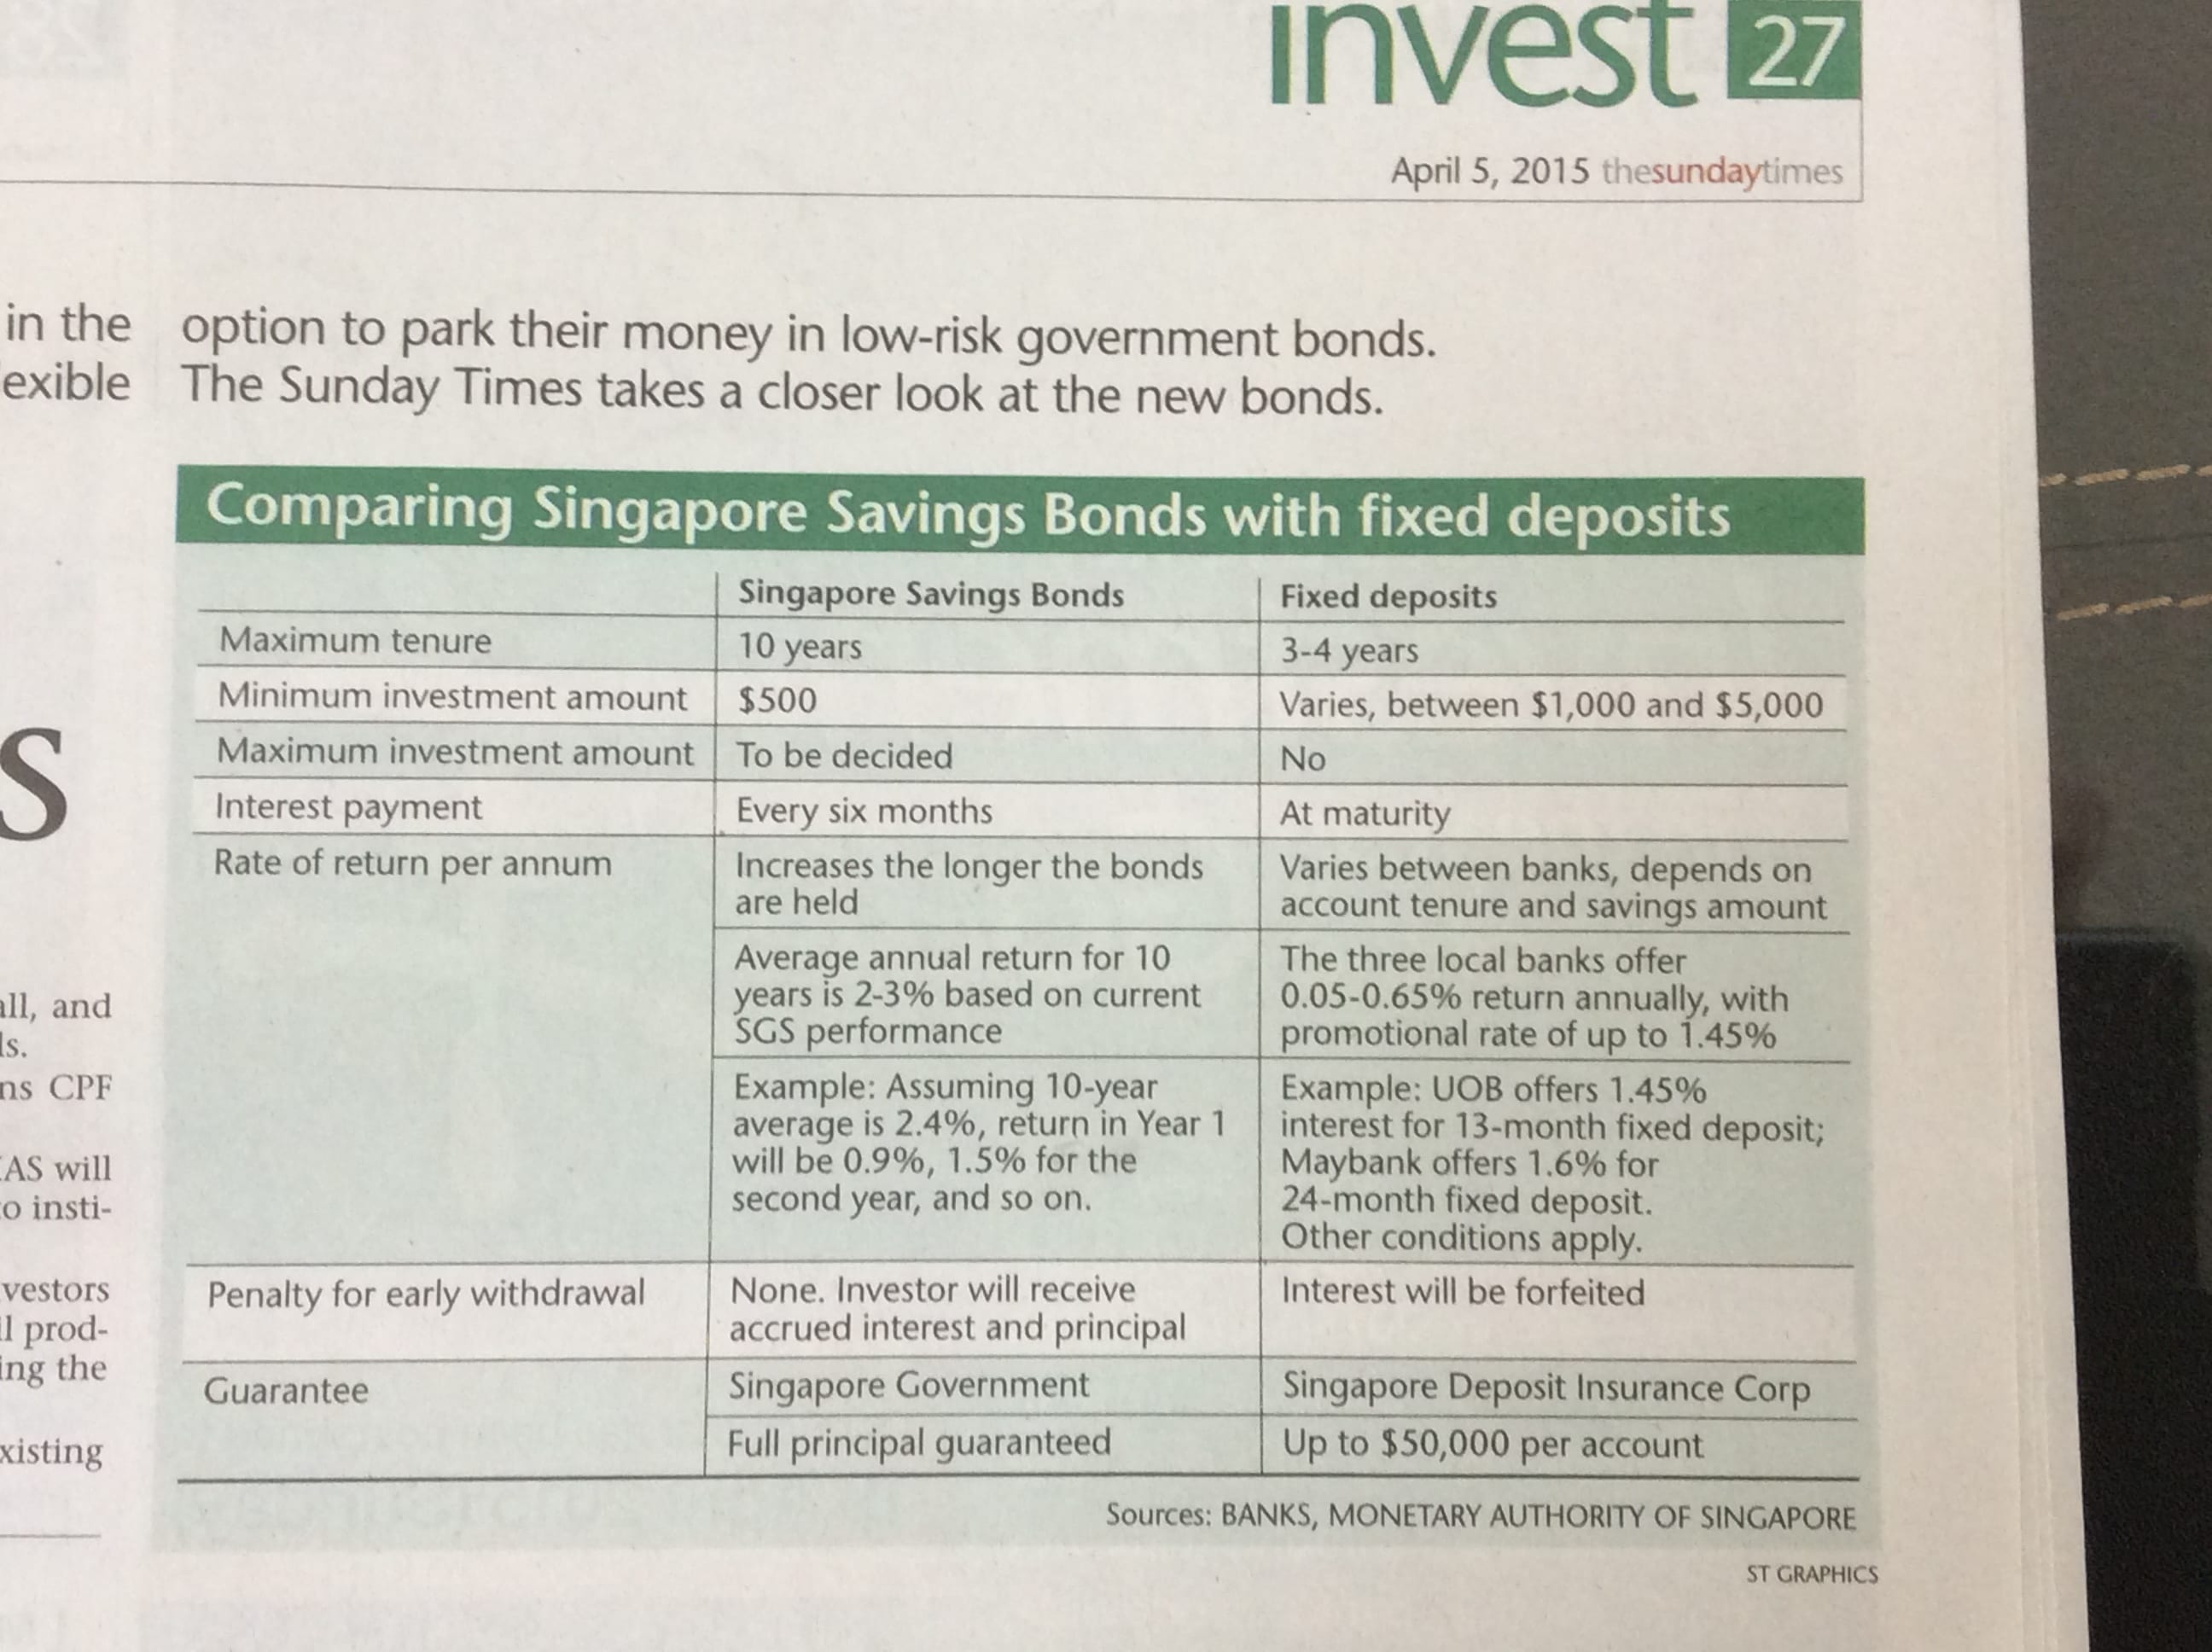 Singapore Savings Bonds (SSB) and Fixed Deposit for Retail Investor.